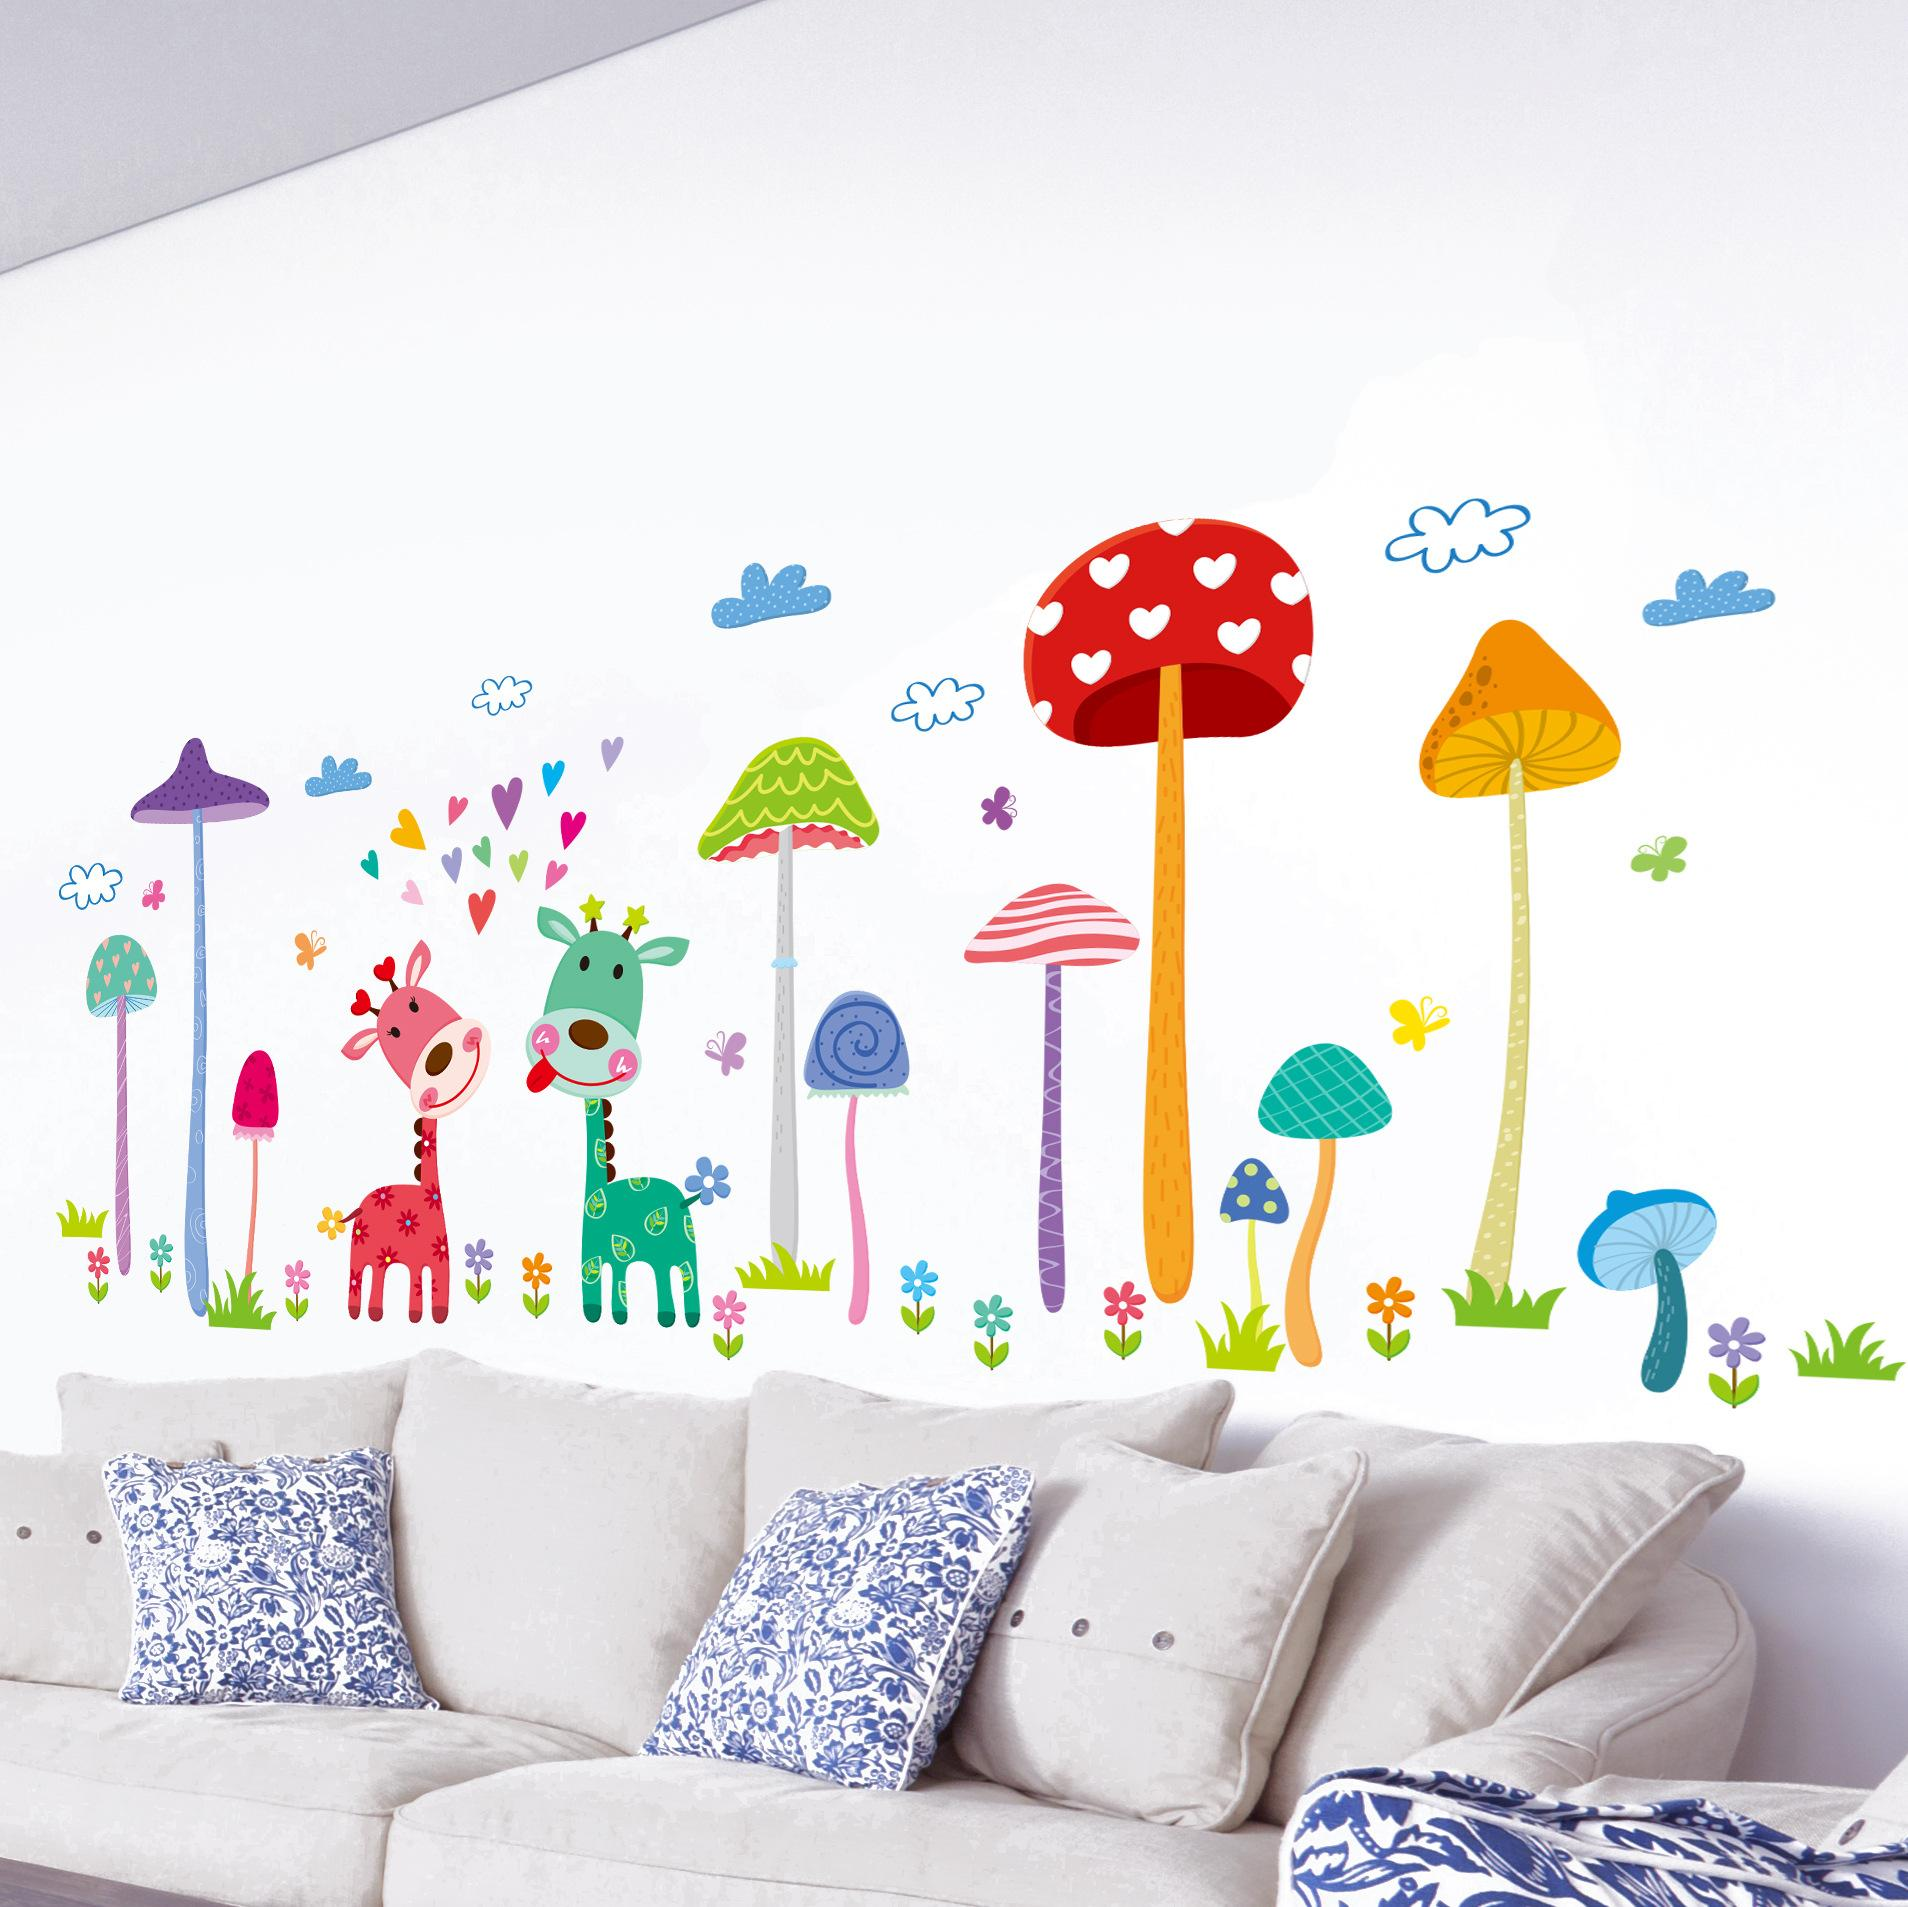 Forest Mushroom Deer Home Wall Art Mural Decor Kids Babies Room Nursery Lovely Animals Family Wallpaper Decoration Decal Wall Applique Adhesive Wall